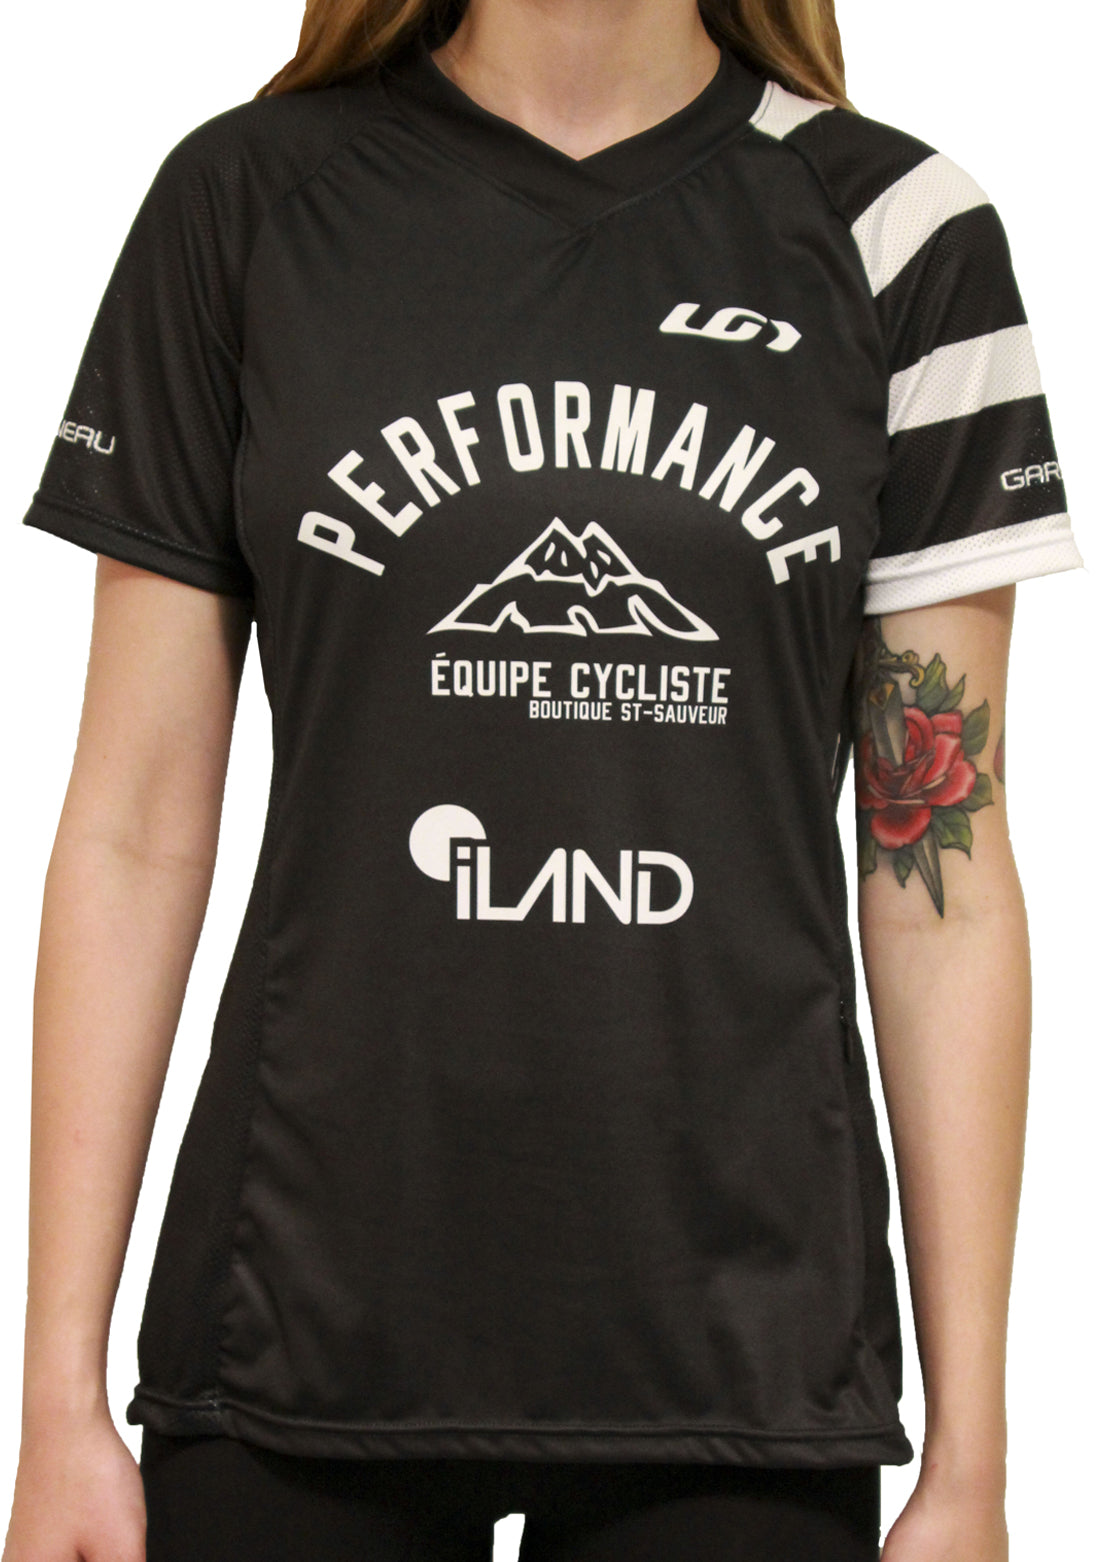 Garneau X PRFO Women's All Mountain Bike Short Sleeve Jersey Black/White